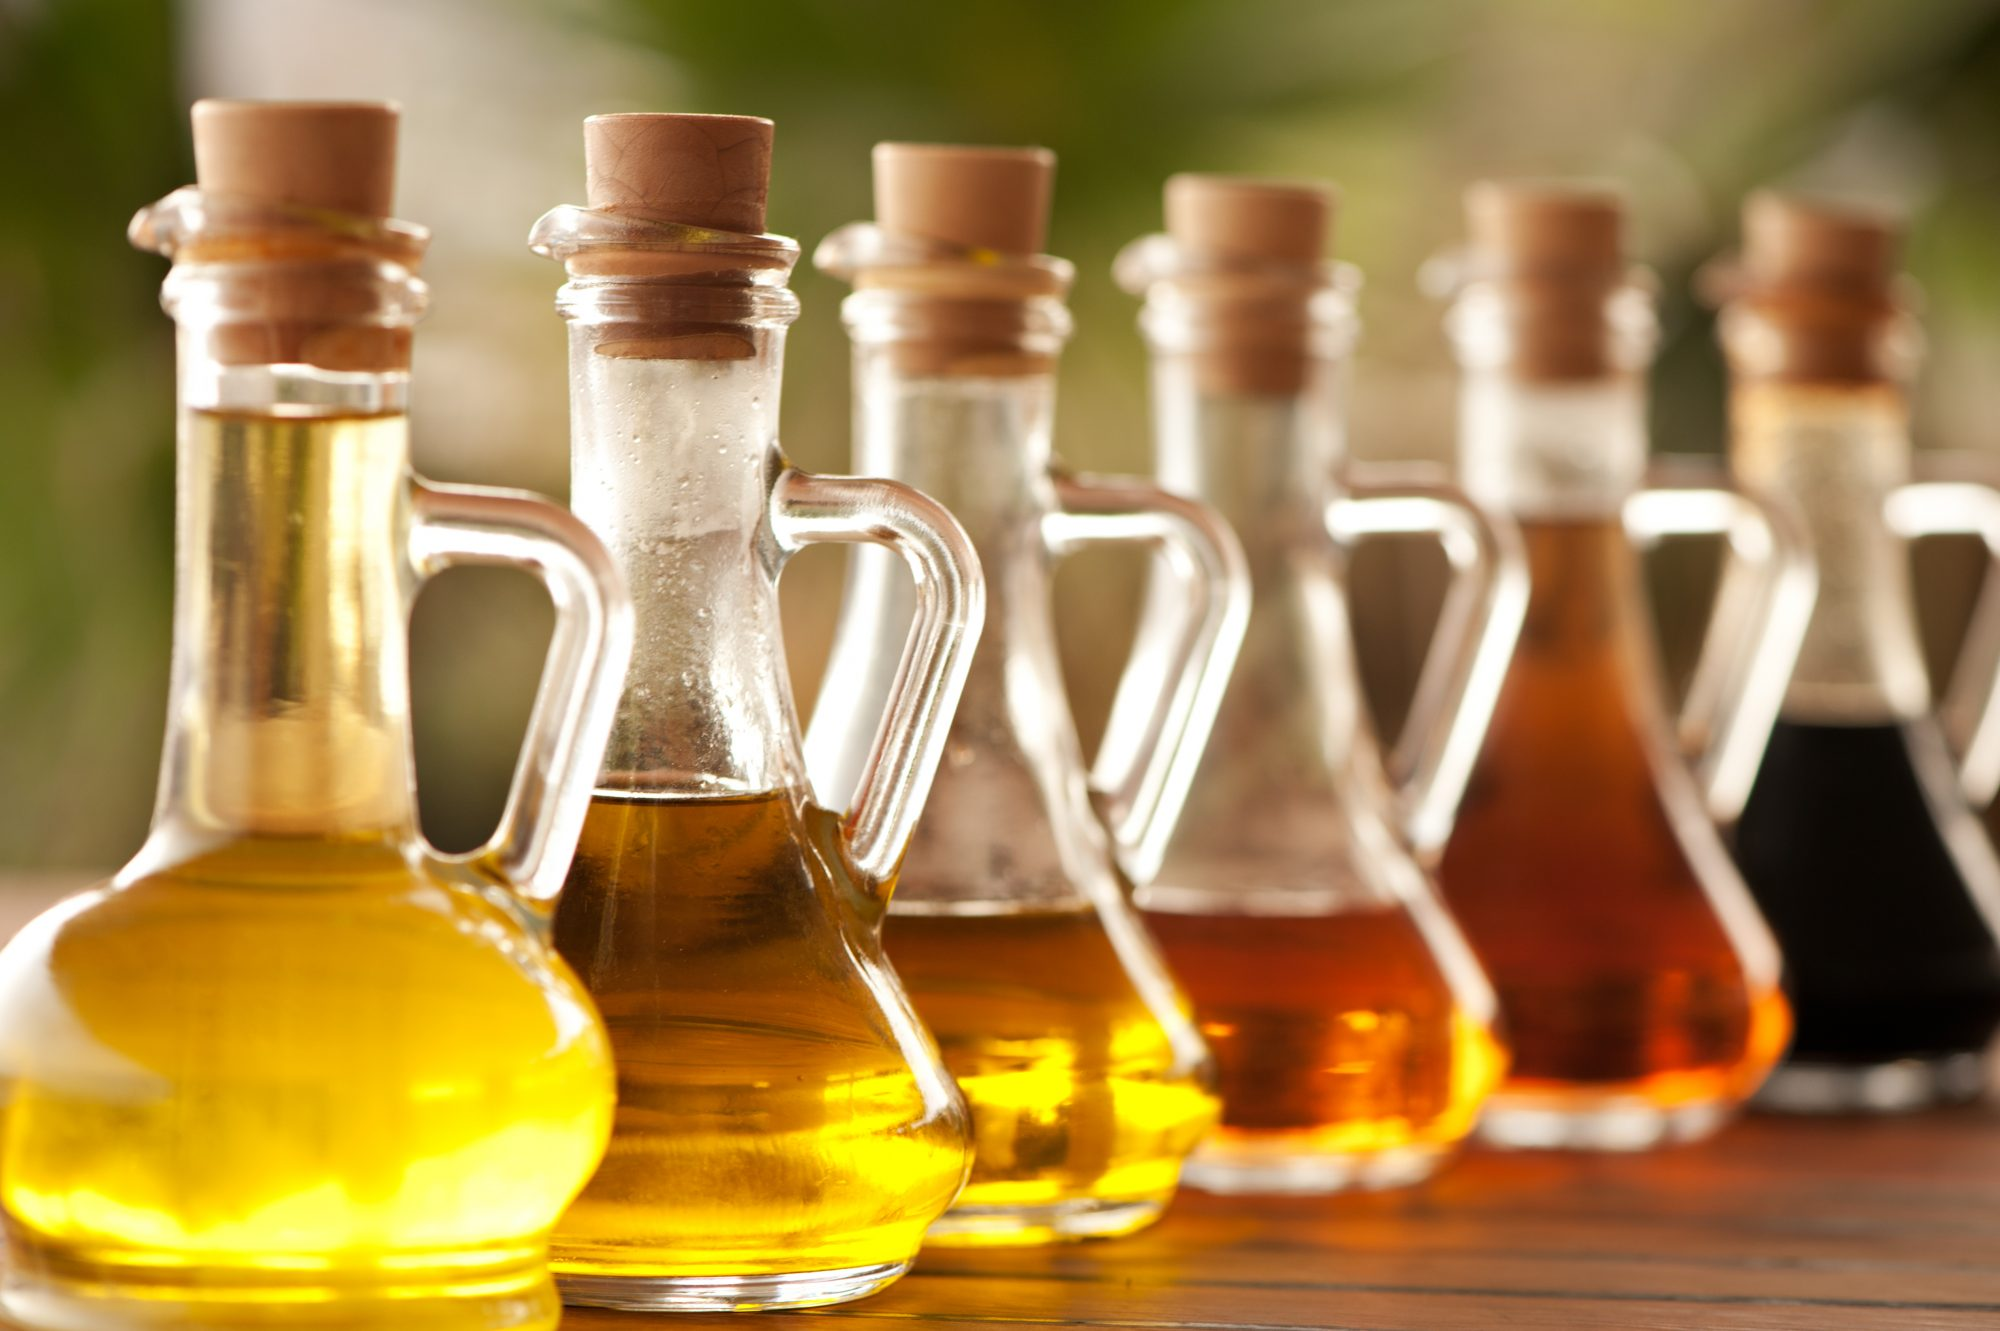 The 5 Vinegars You Should Always Have On Hand